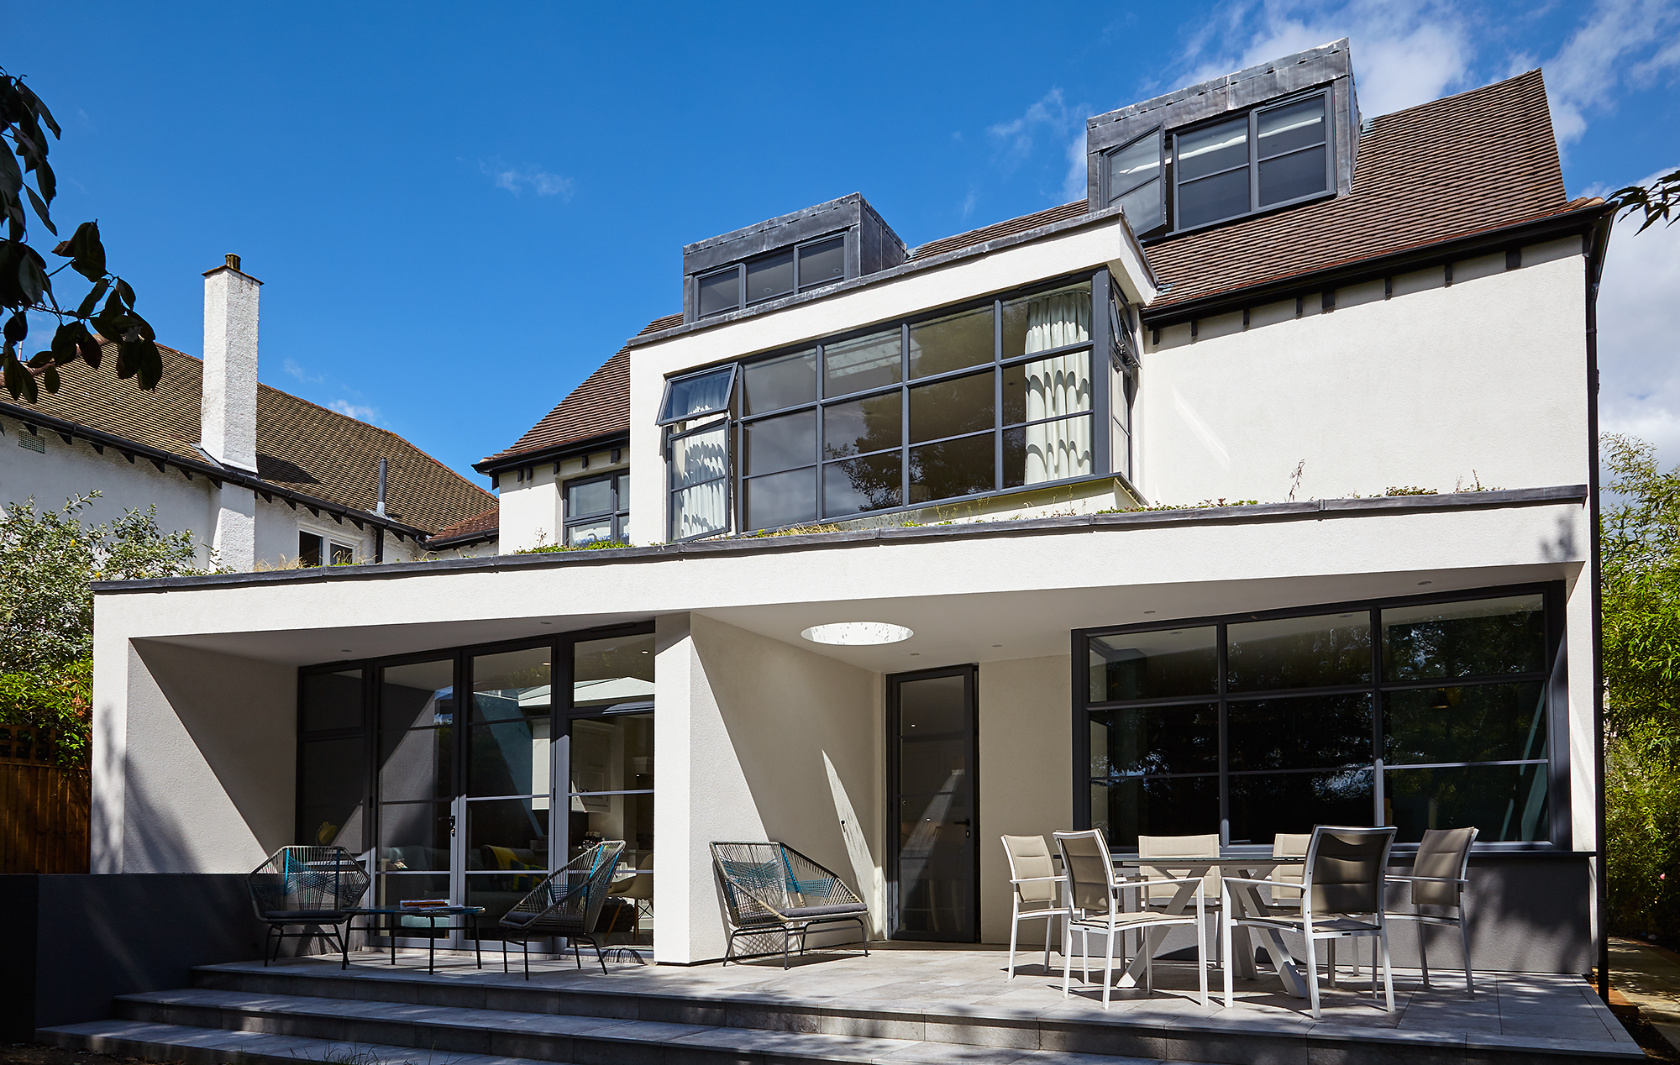 House refurbishment and extensions in SW20, ground floor spaces transition onto the garden terrace.